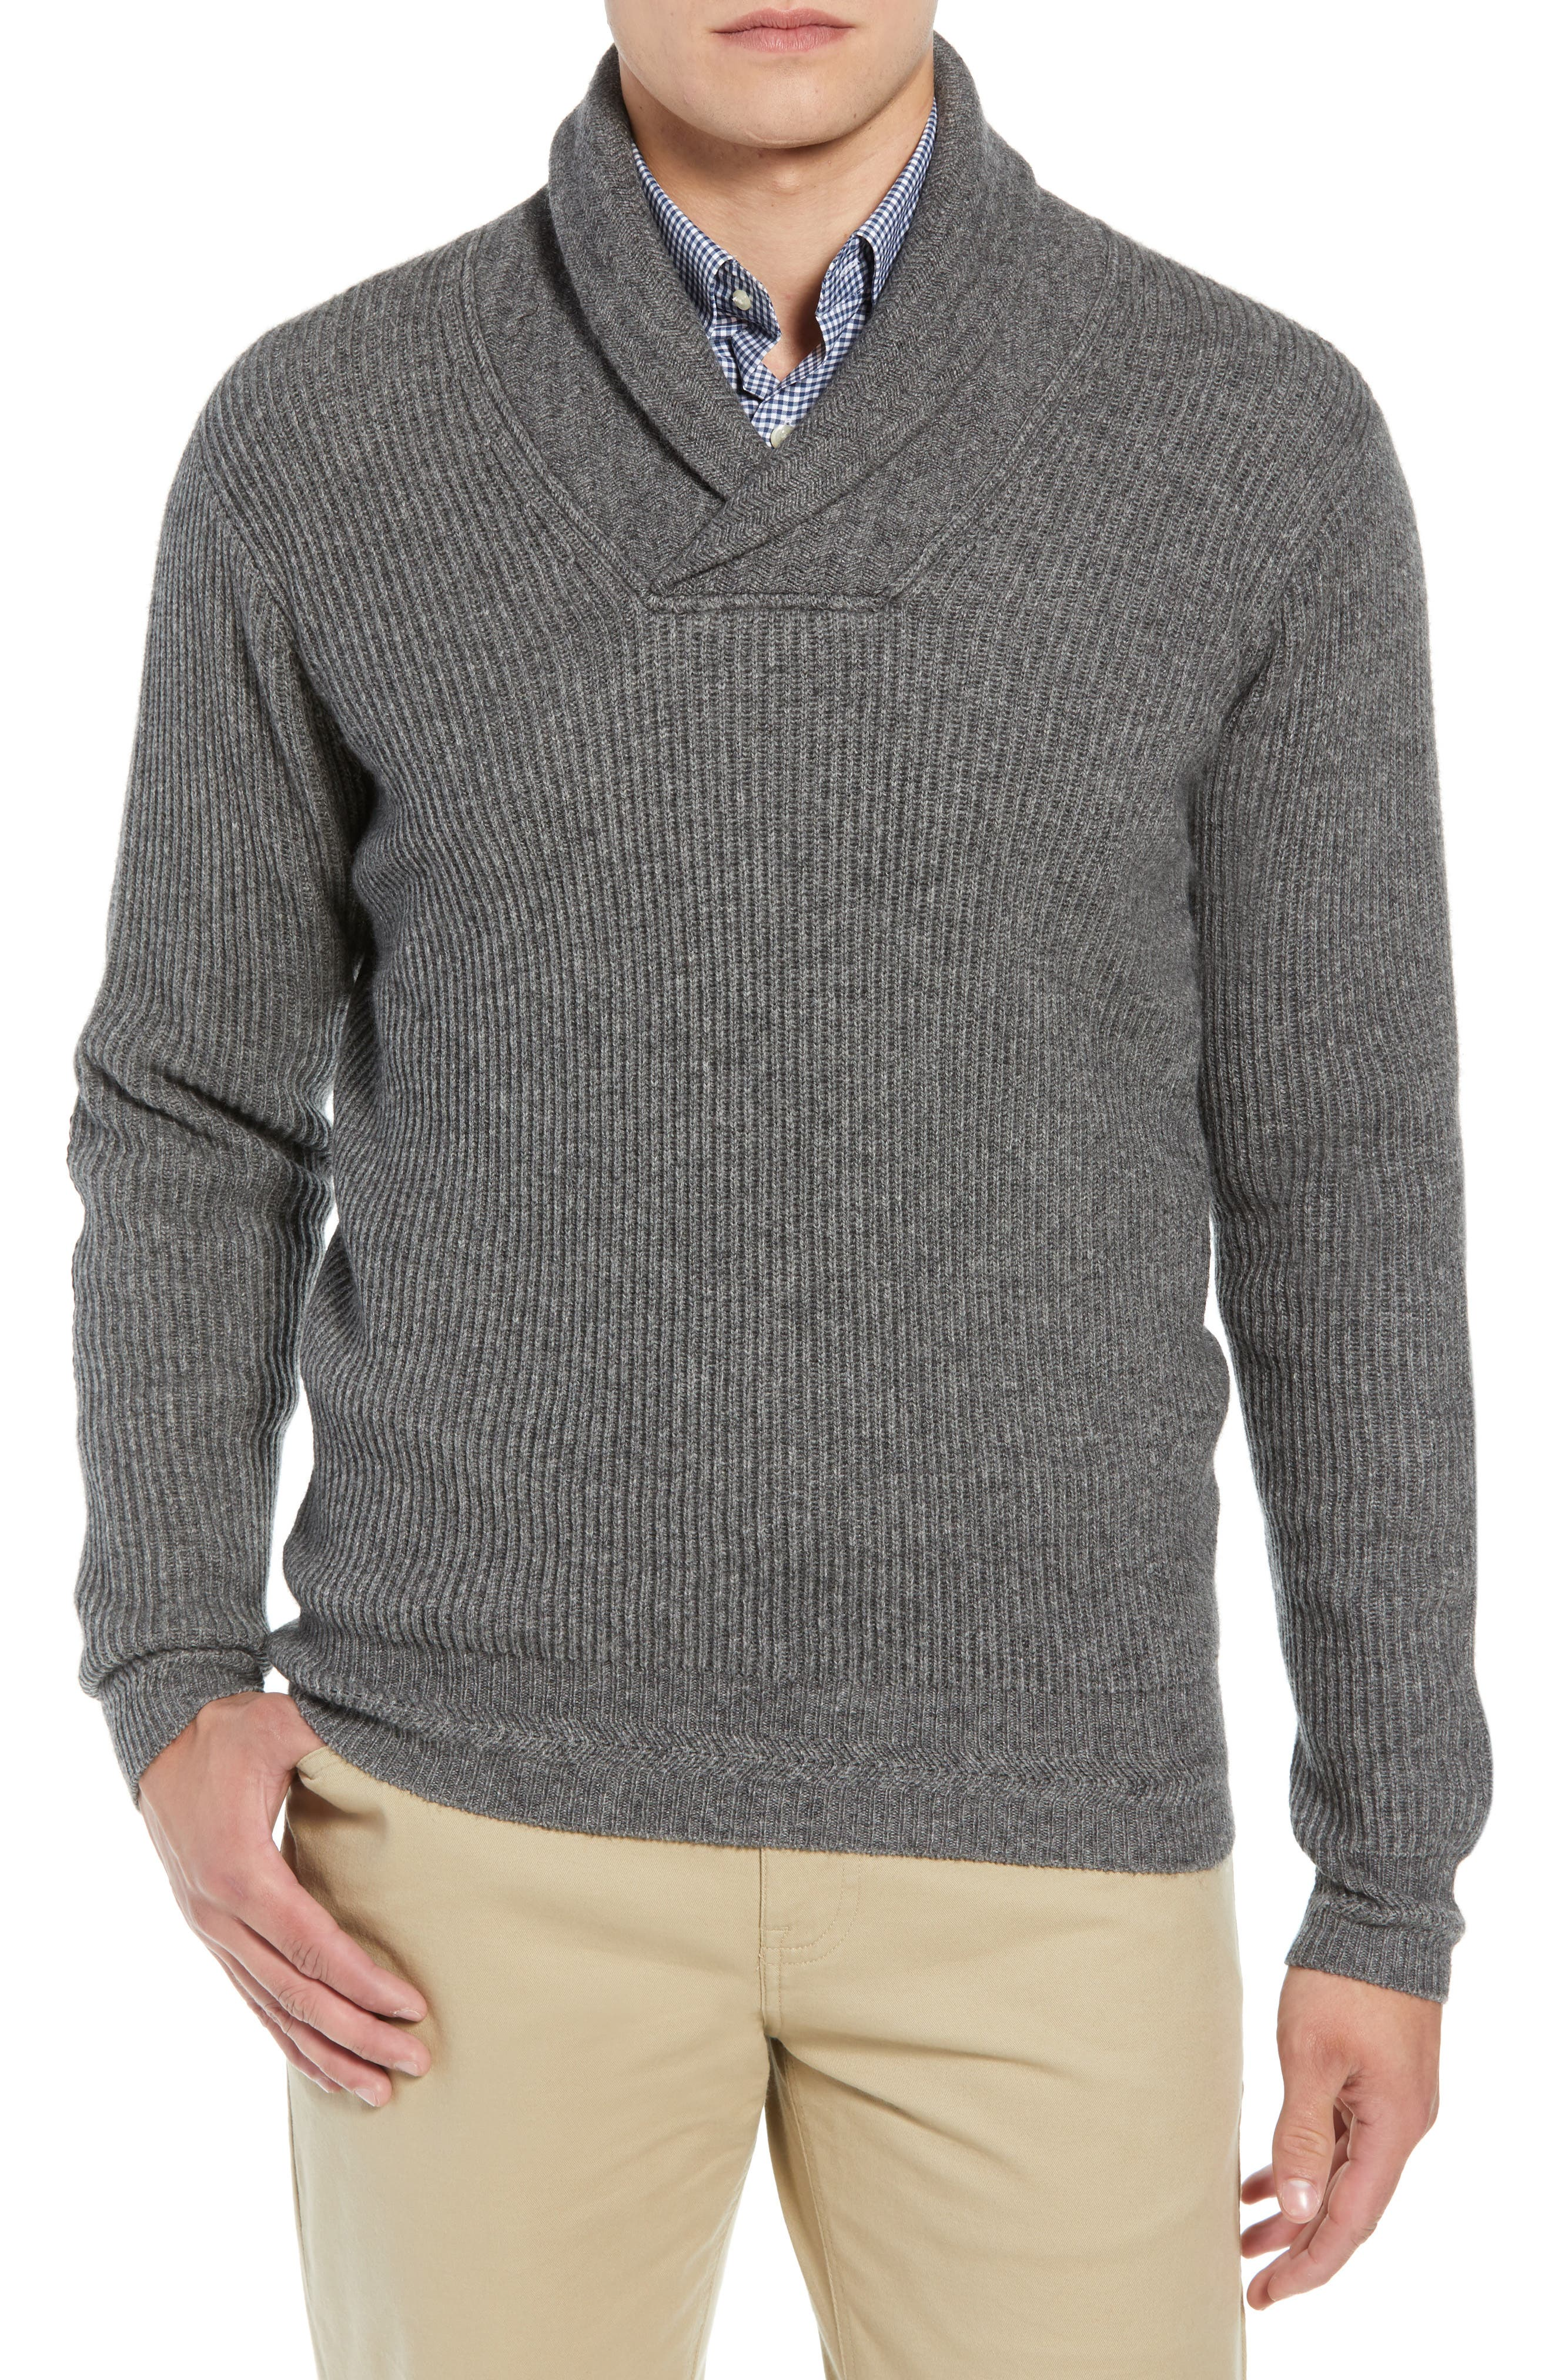 Mountainside Wool Blend Shawl Sweater,                         Main,                         color, GREY